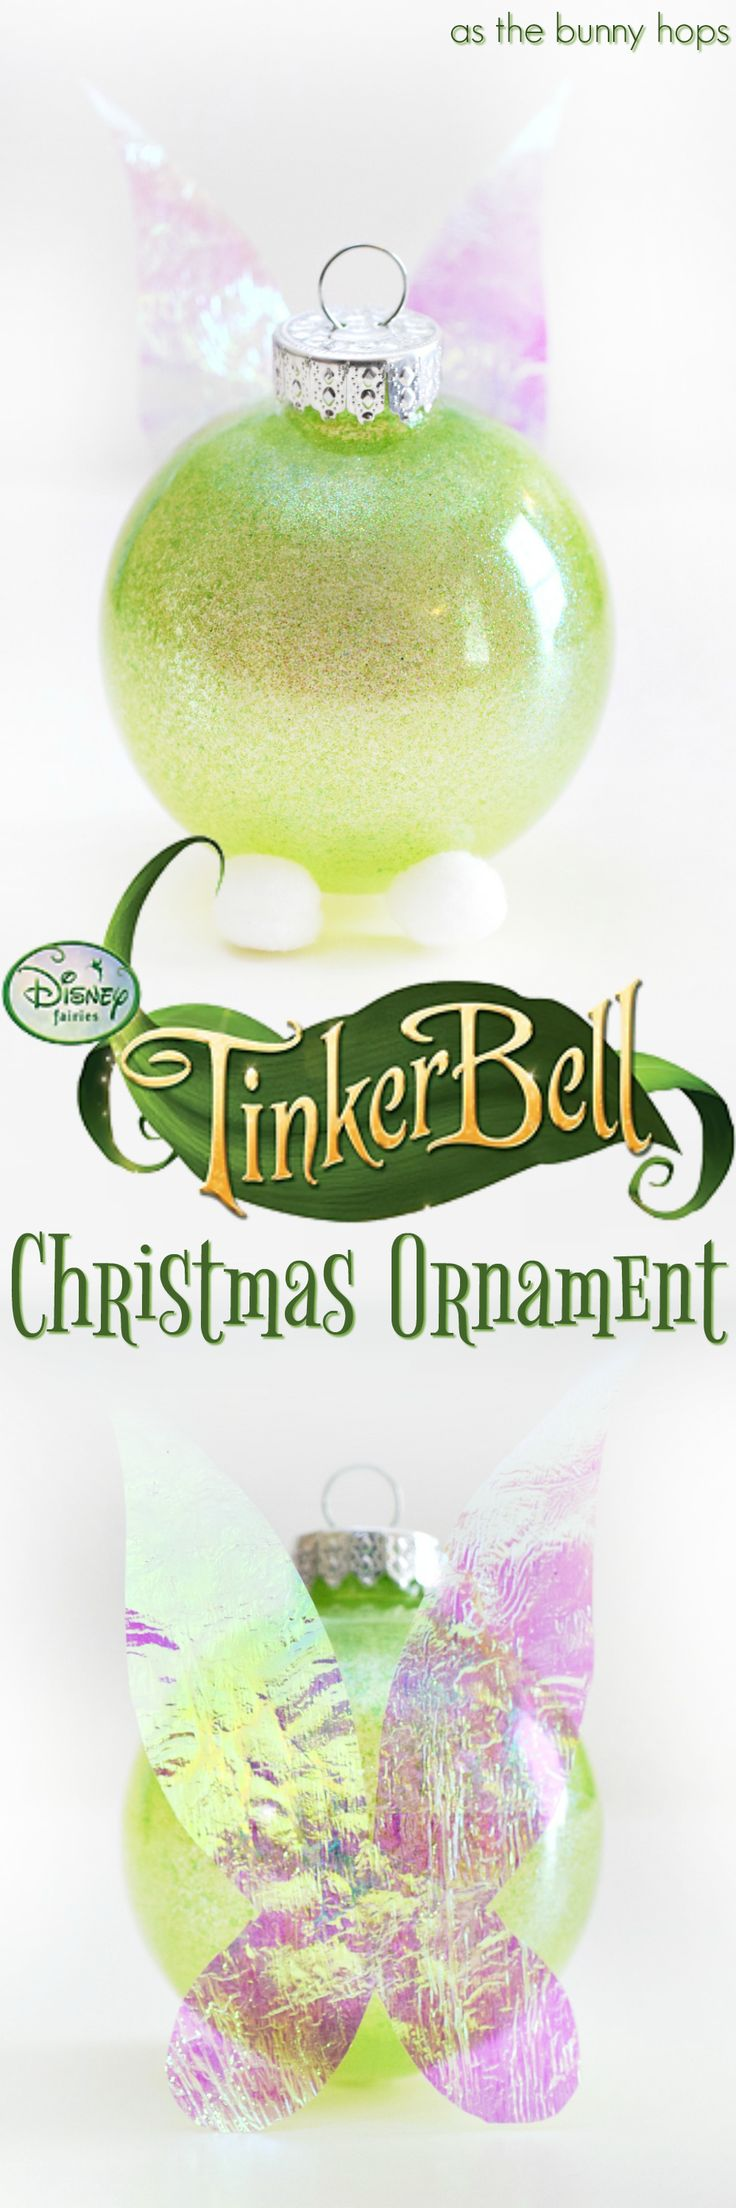 Tinker Bellinspired Christmas Ornament